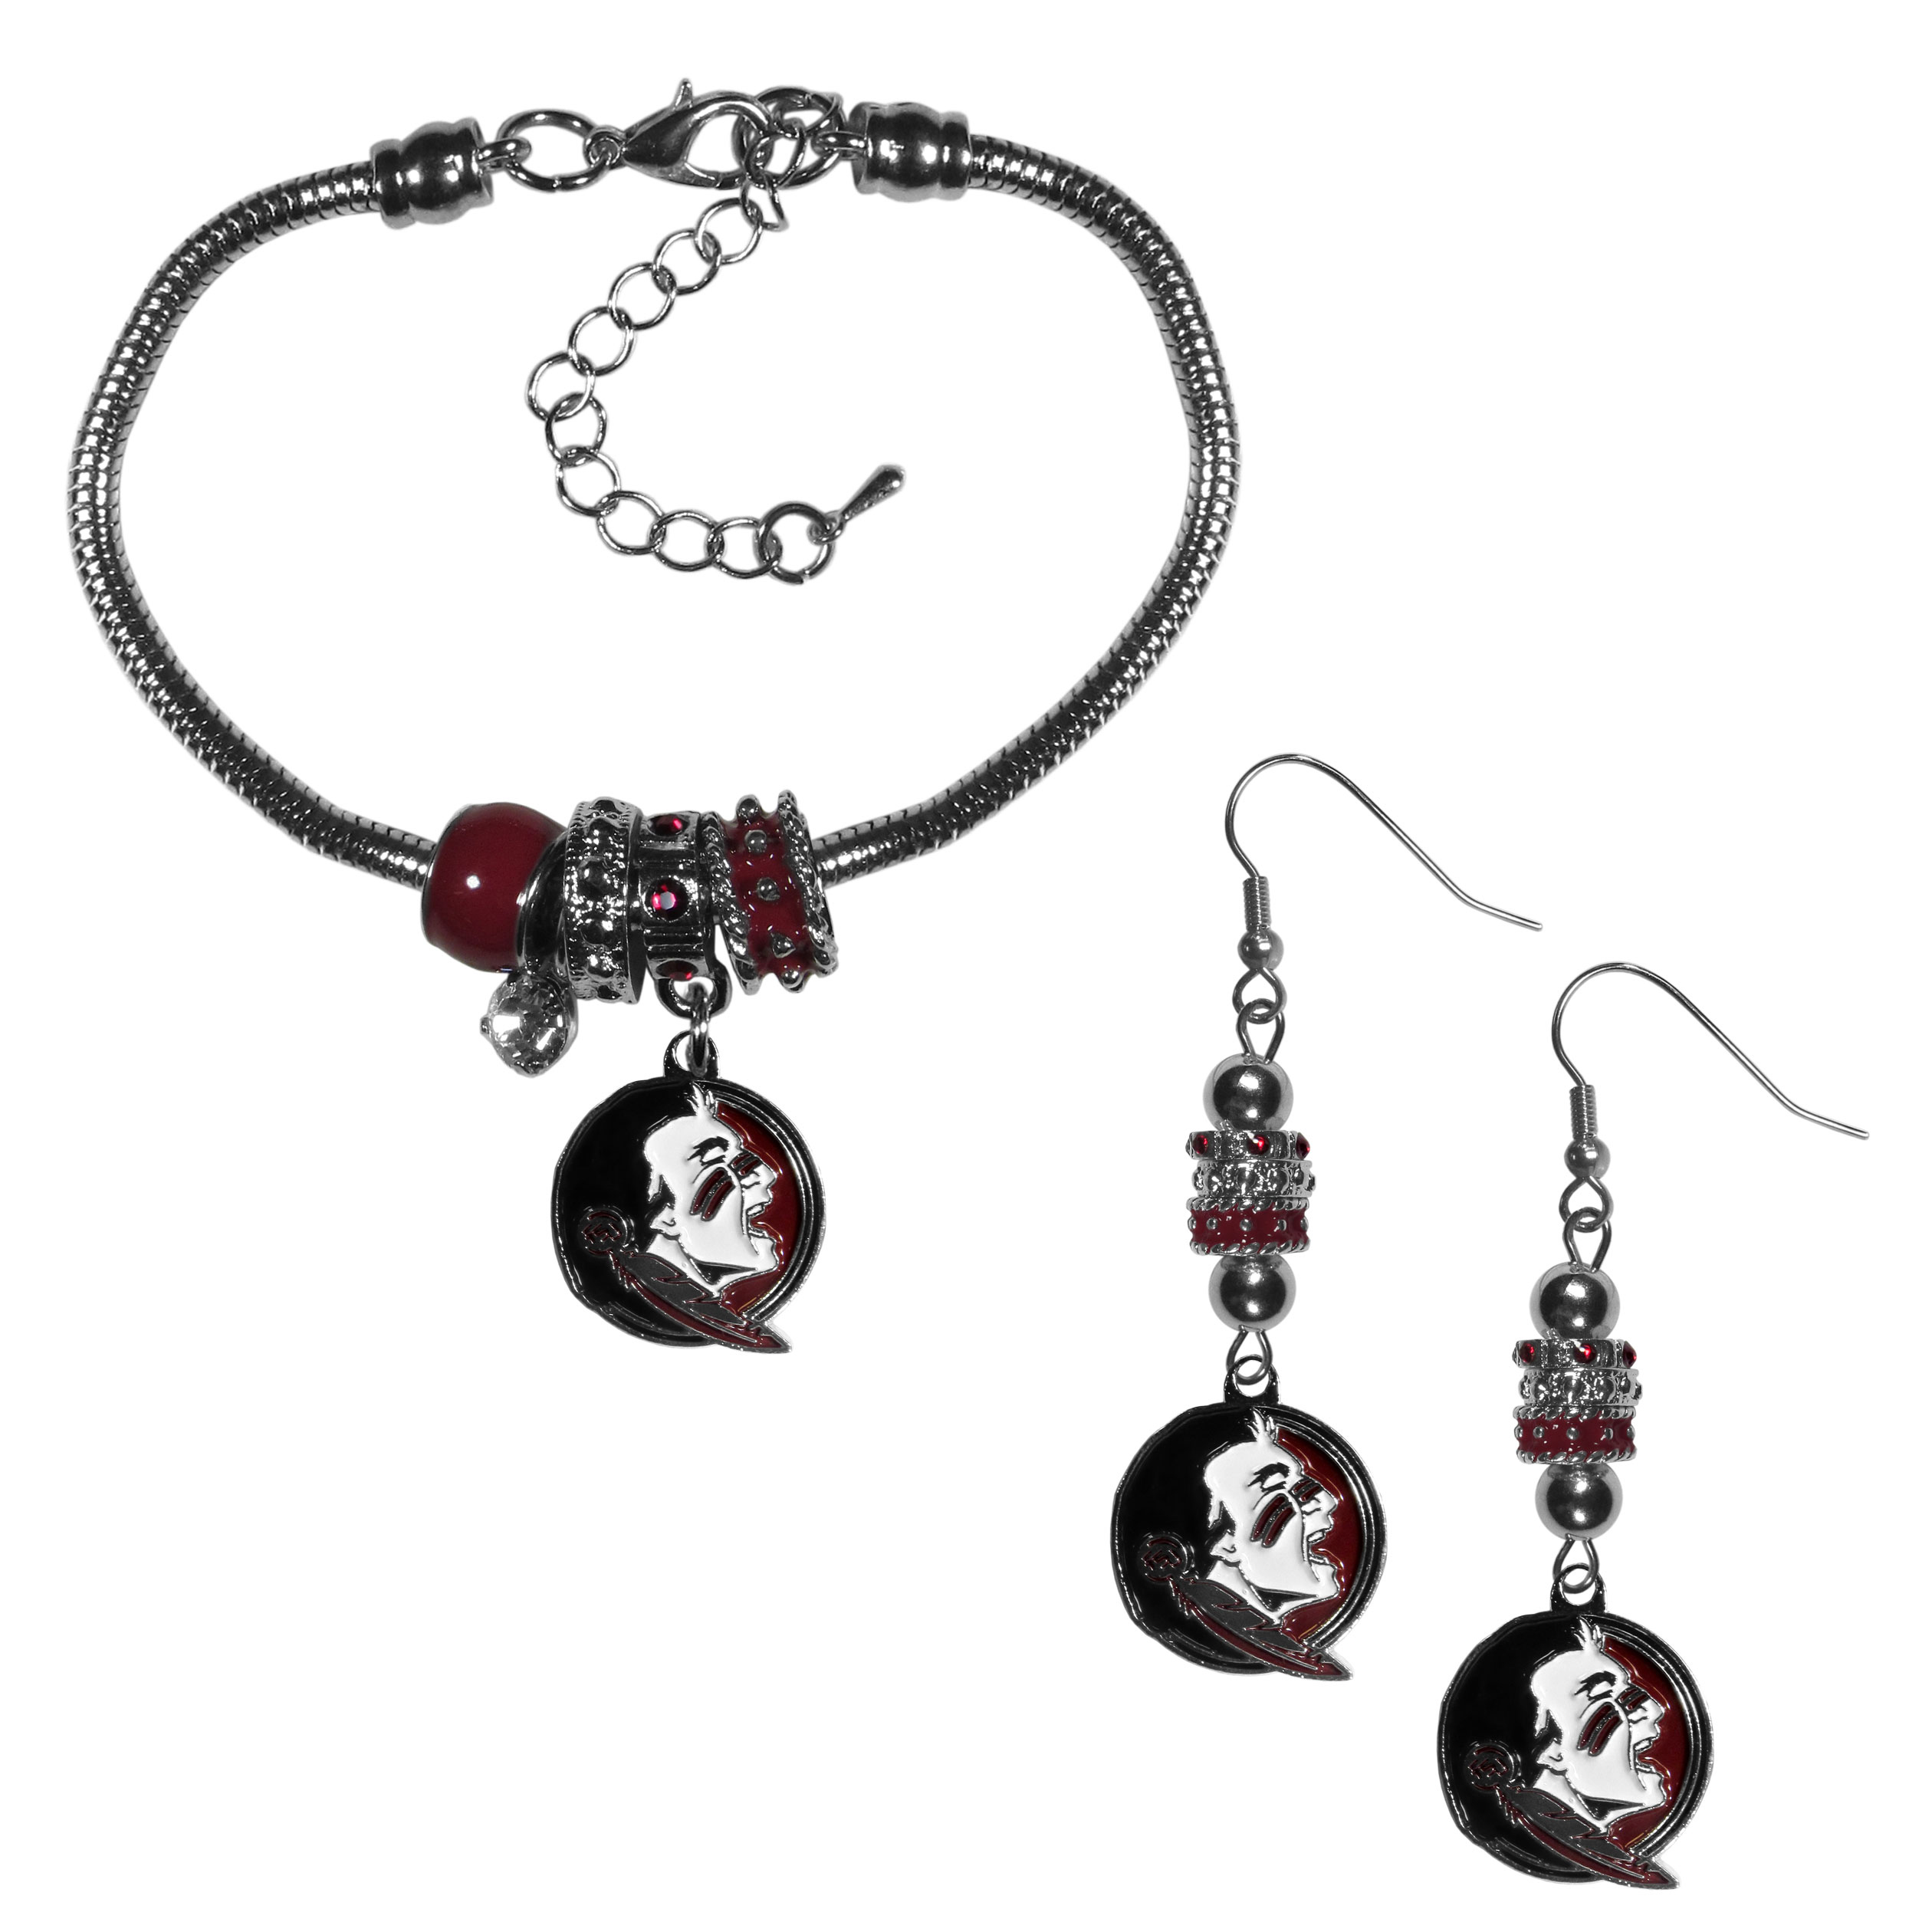 Florida St. Seminoles Euro Bead Earrings and Bracelet Set - We combine the popular Euro bead style with your love of the Florida St. Seminoles with this beautiful jewelry set that includes earrings and a matching bracelet. The stylish earrings feature hypoallergenic, nickel free fishhook posts and 3 team colored Euro beads and a metal team charm. The matching snake chain bracelet is 7.5 inches long with a 2 inch extender and 4 Euro beads with a rhinestone charm and team charm.